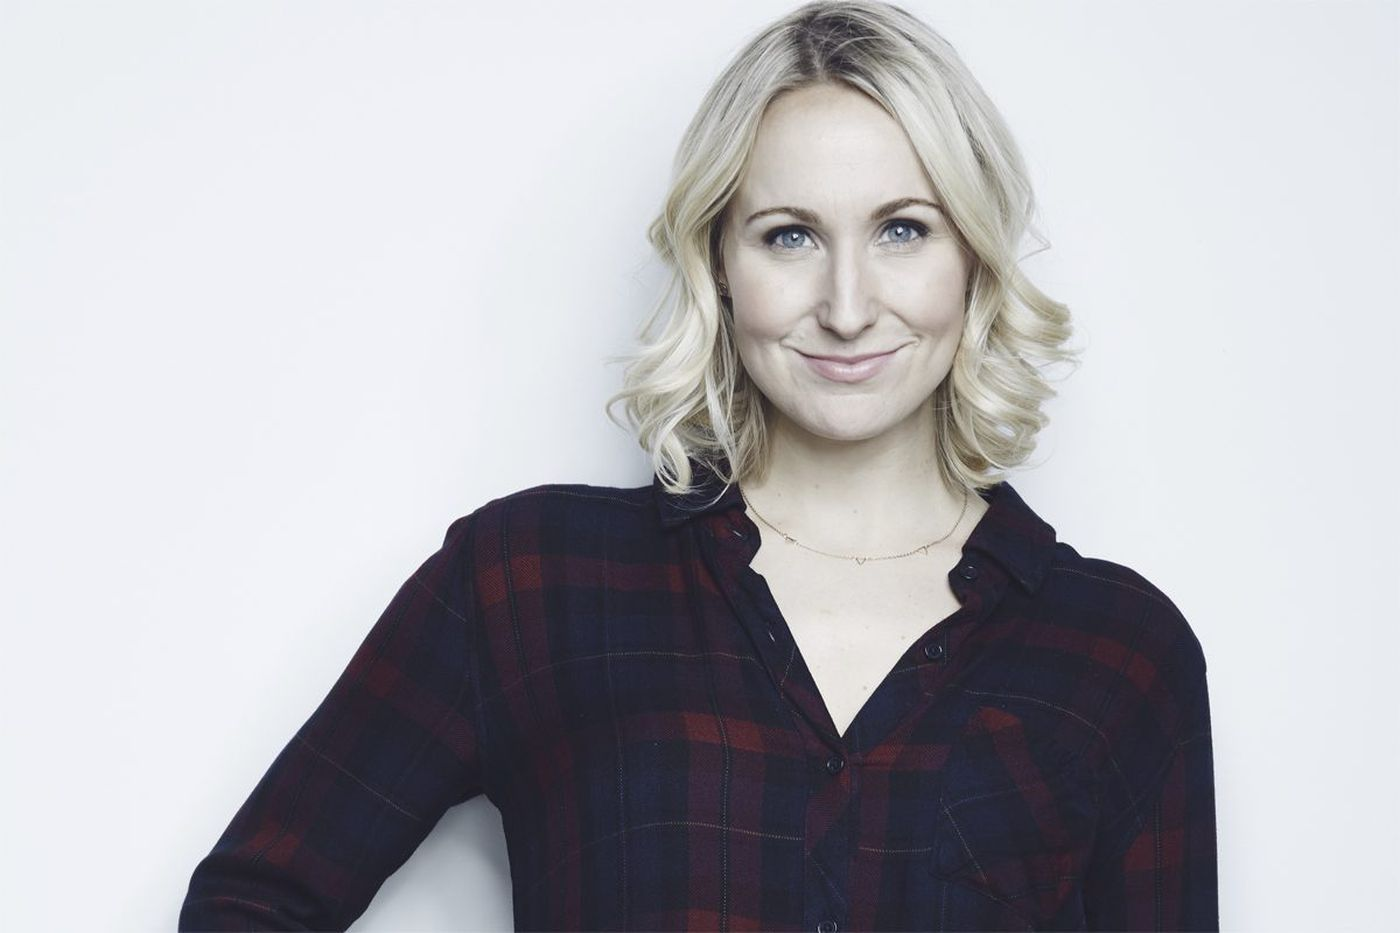 One of Nikki Glaser's Philly shows this week is going to the dogs